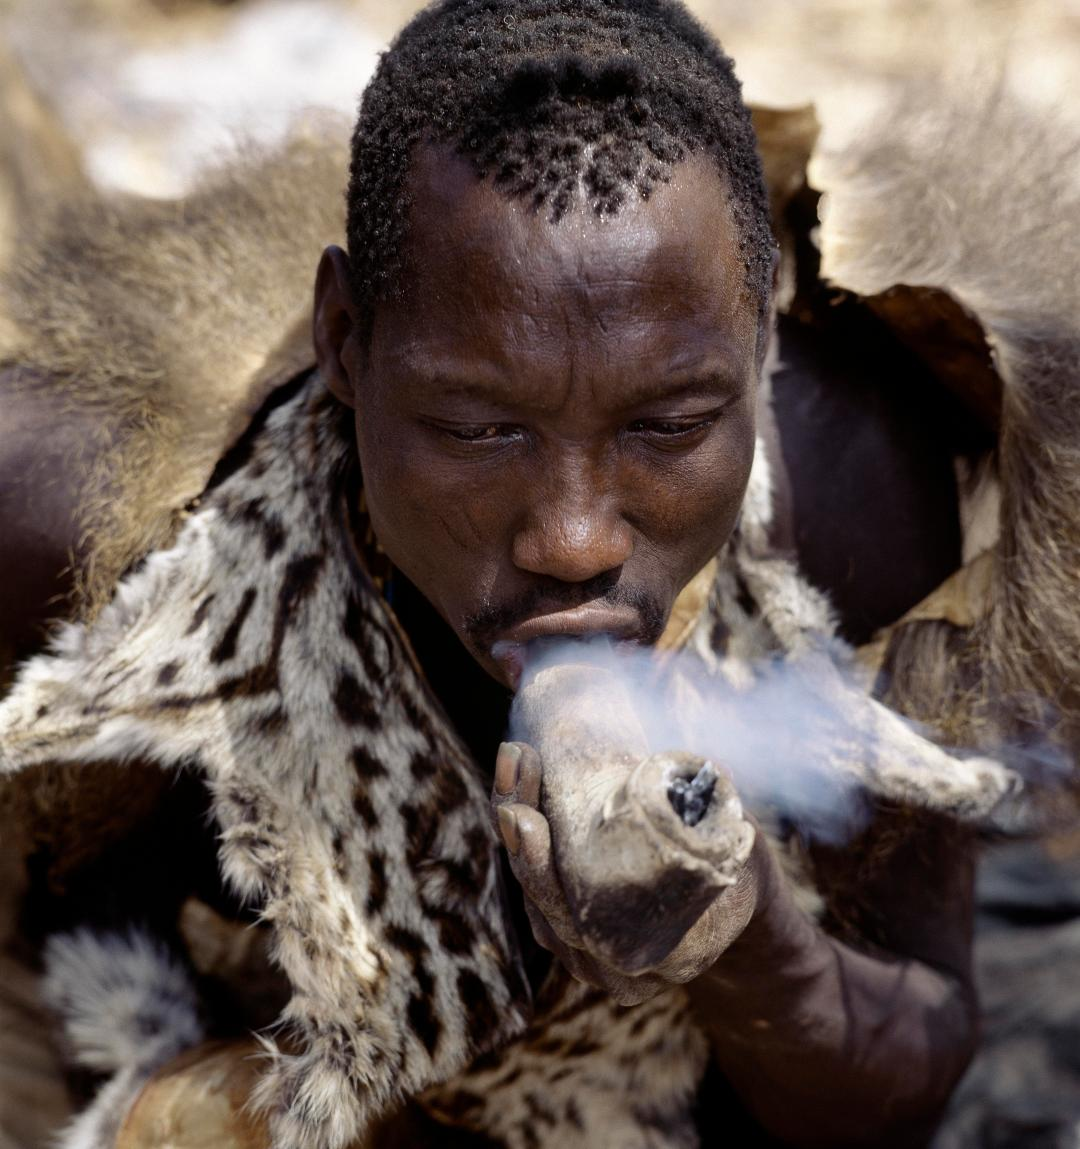 A Hadza hunter wearing a genet cat skin cape smokes cannabis from a crude stone pipe sheathed in leather